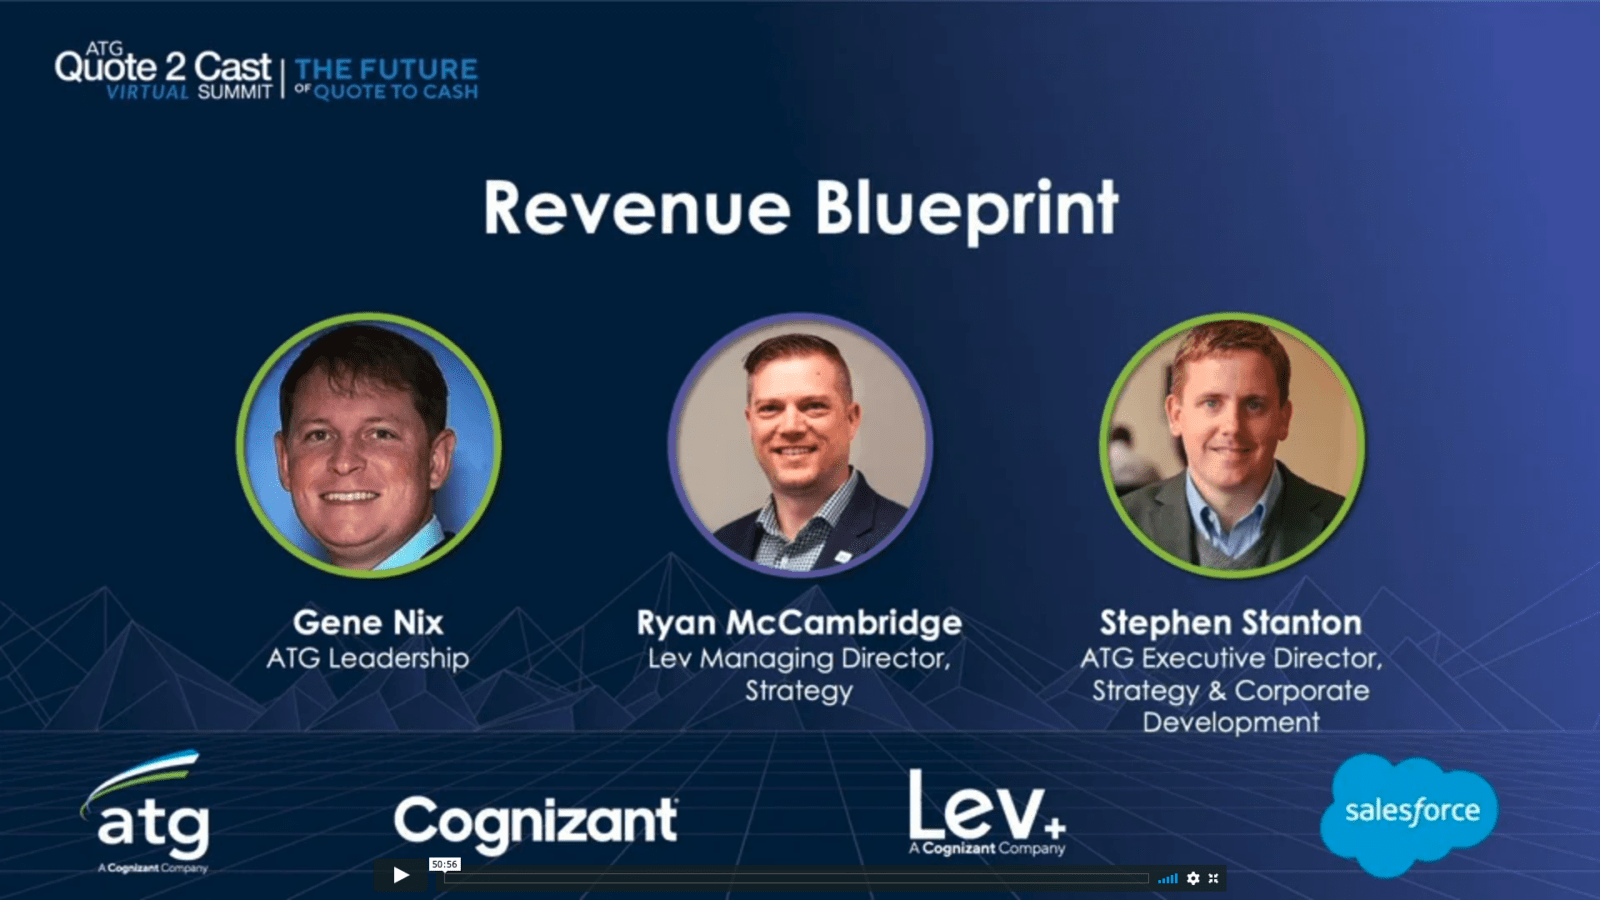 Revenue Blueprint